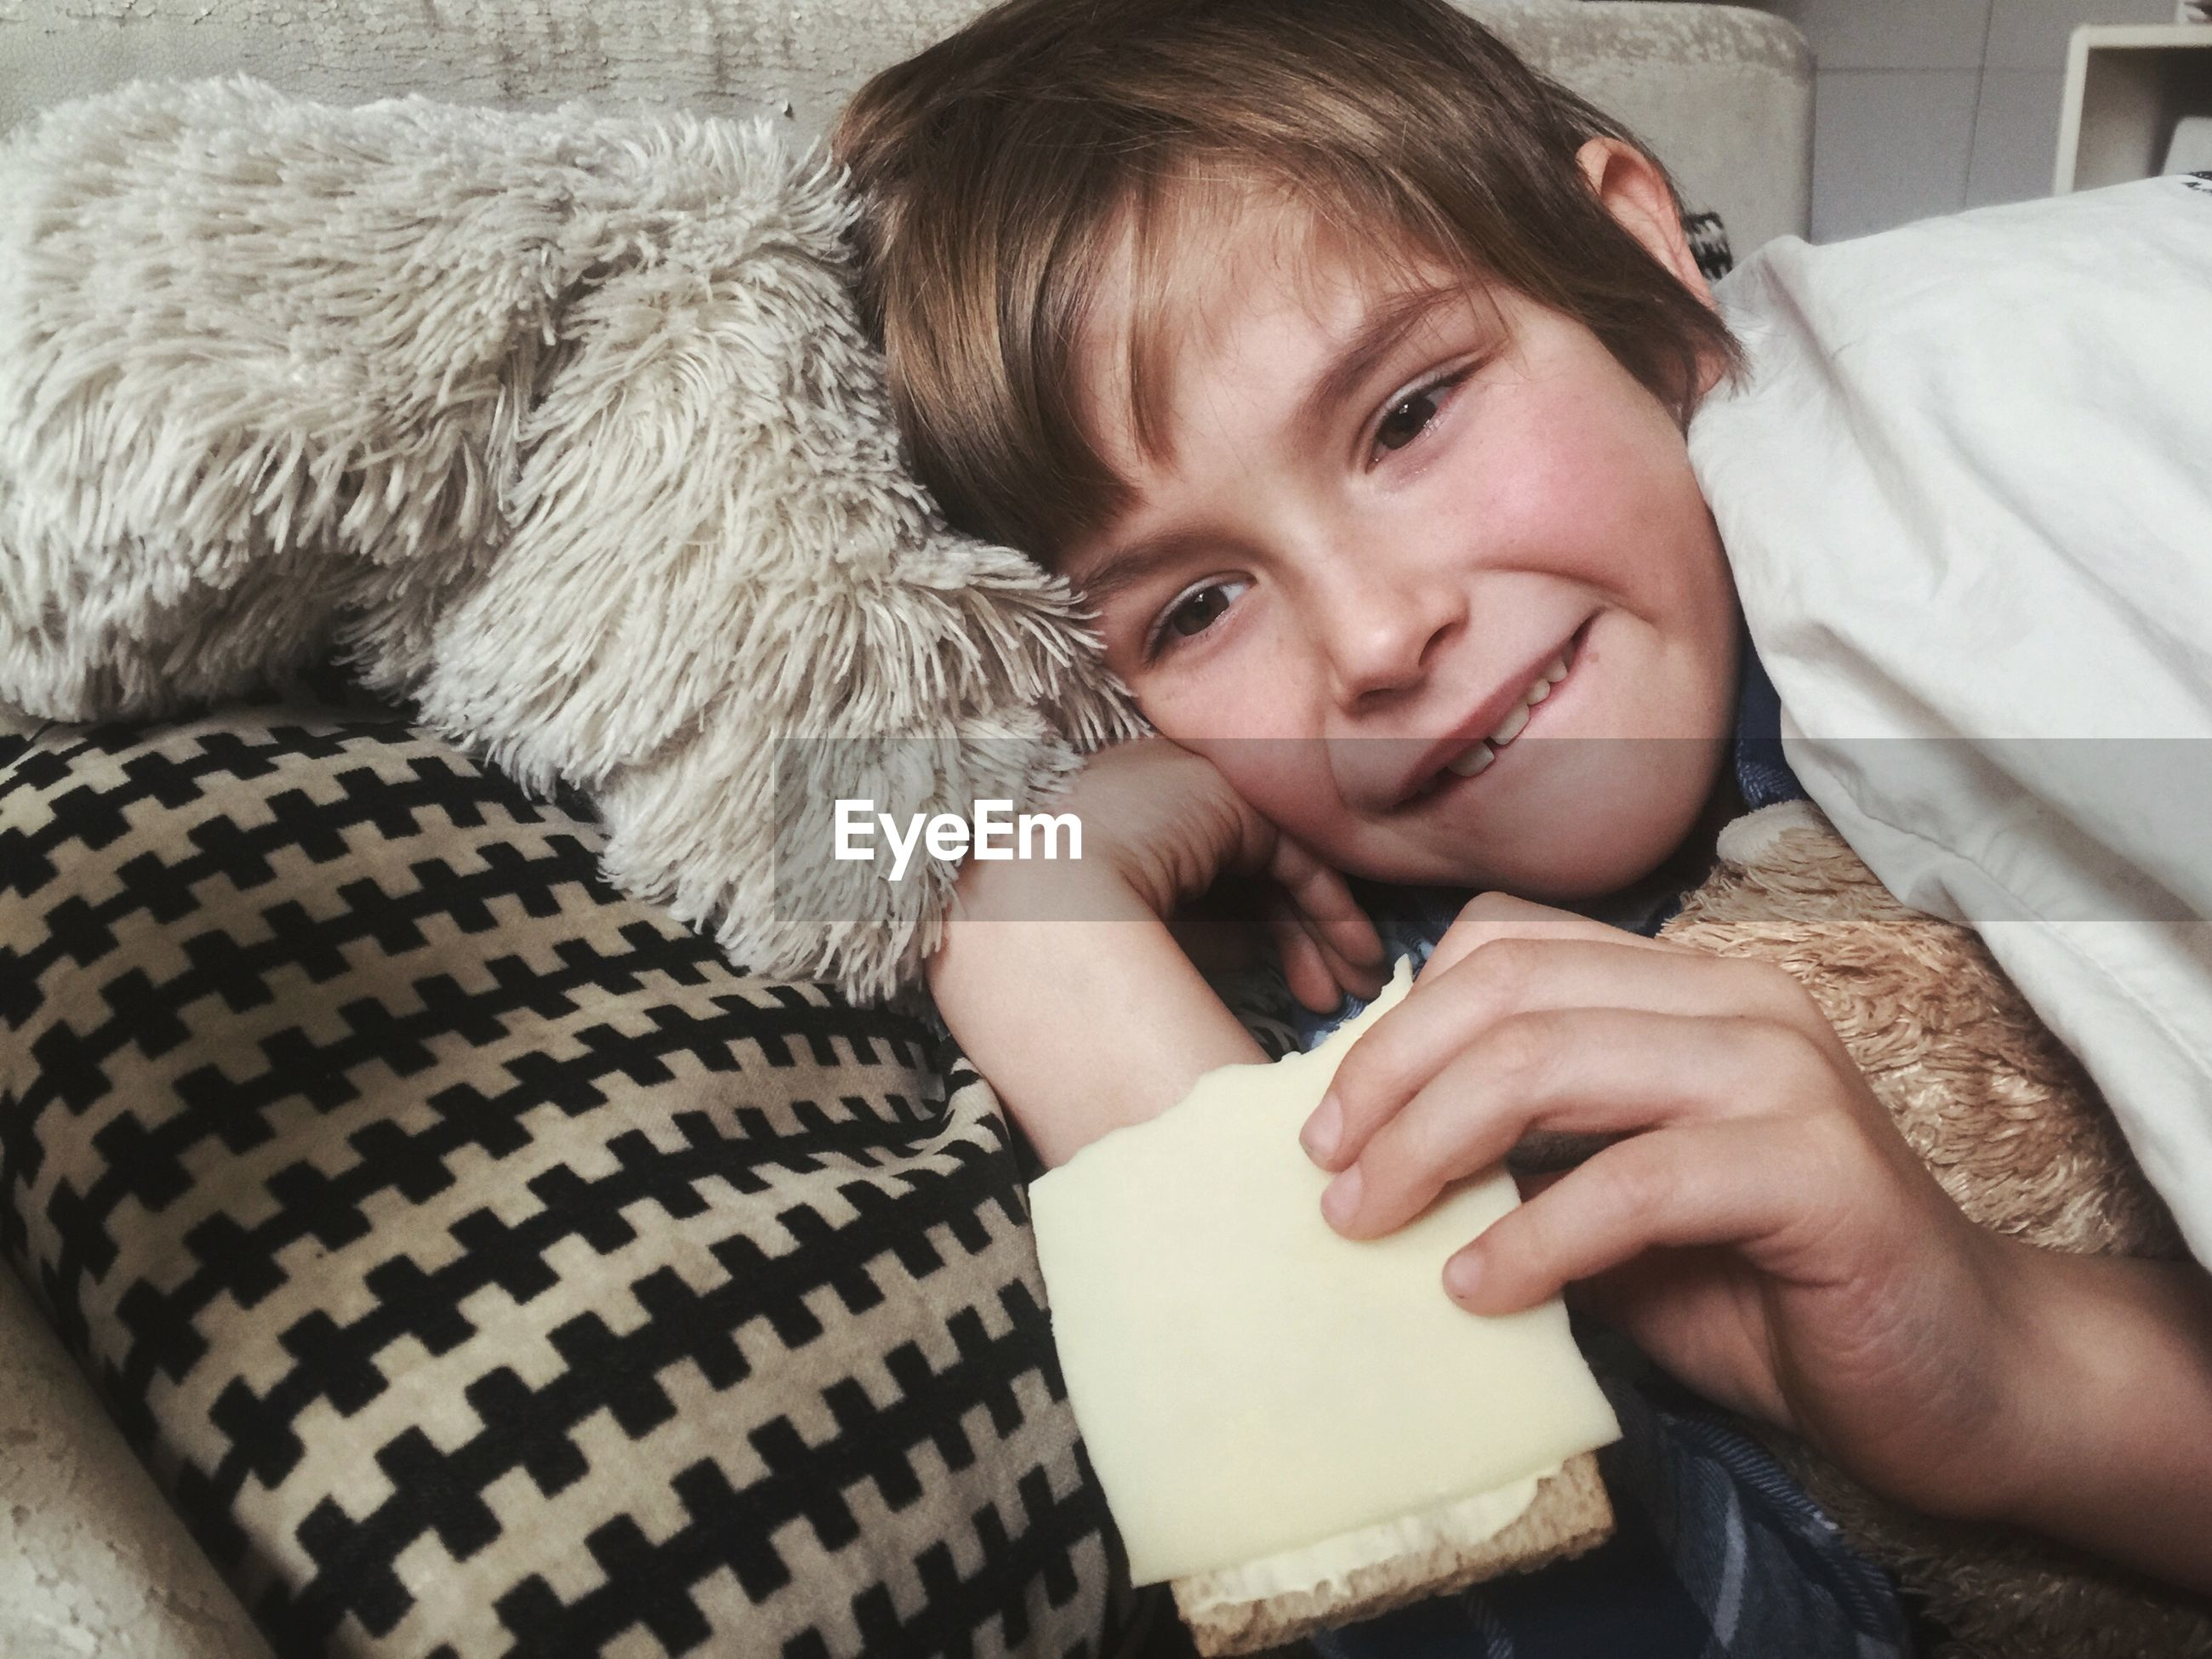 Portrait of boy eating cheese while lying on bed at home